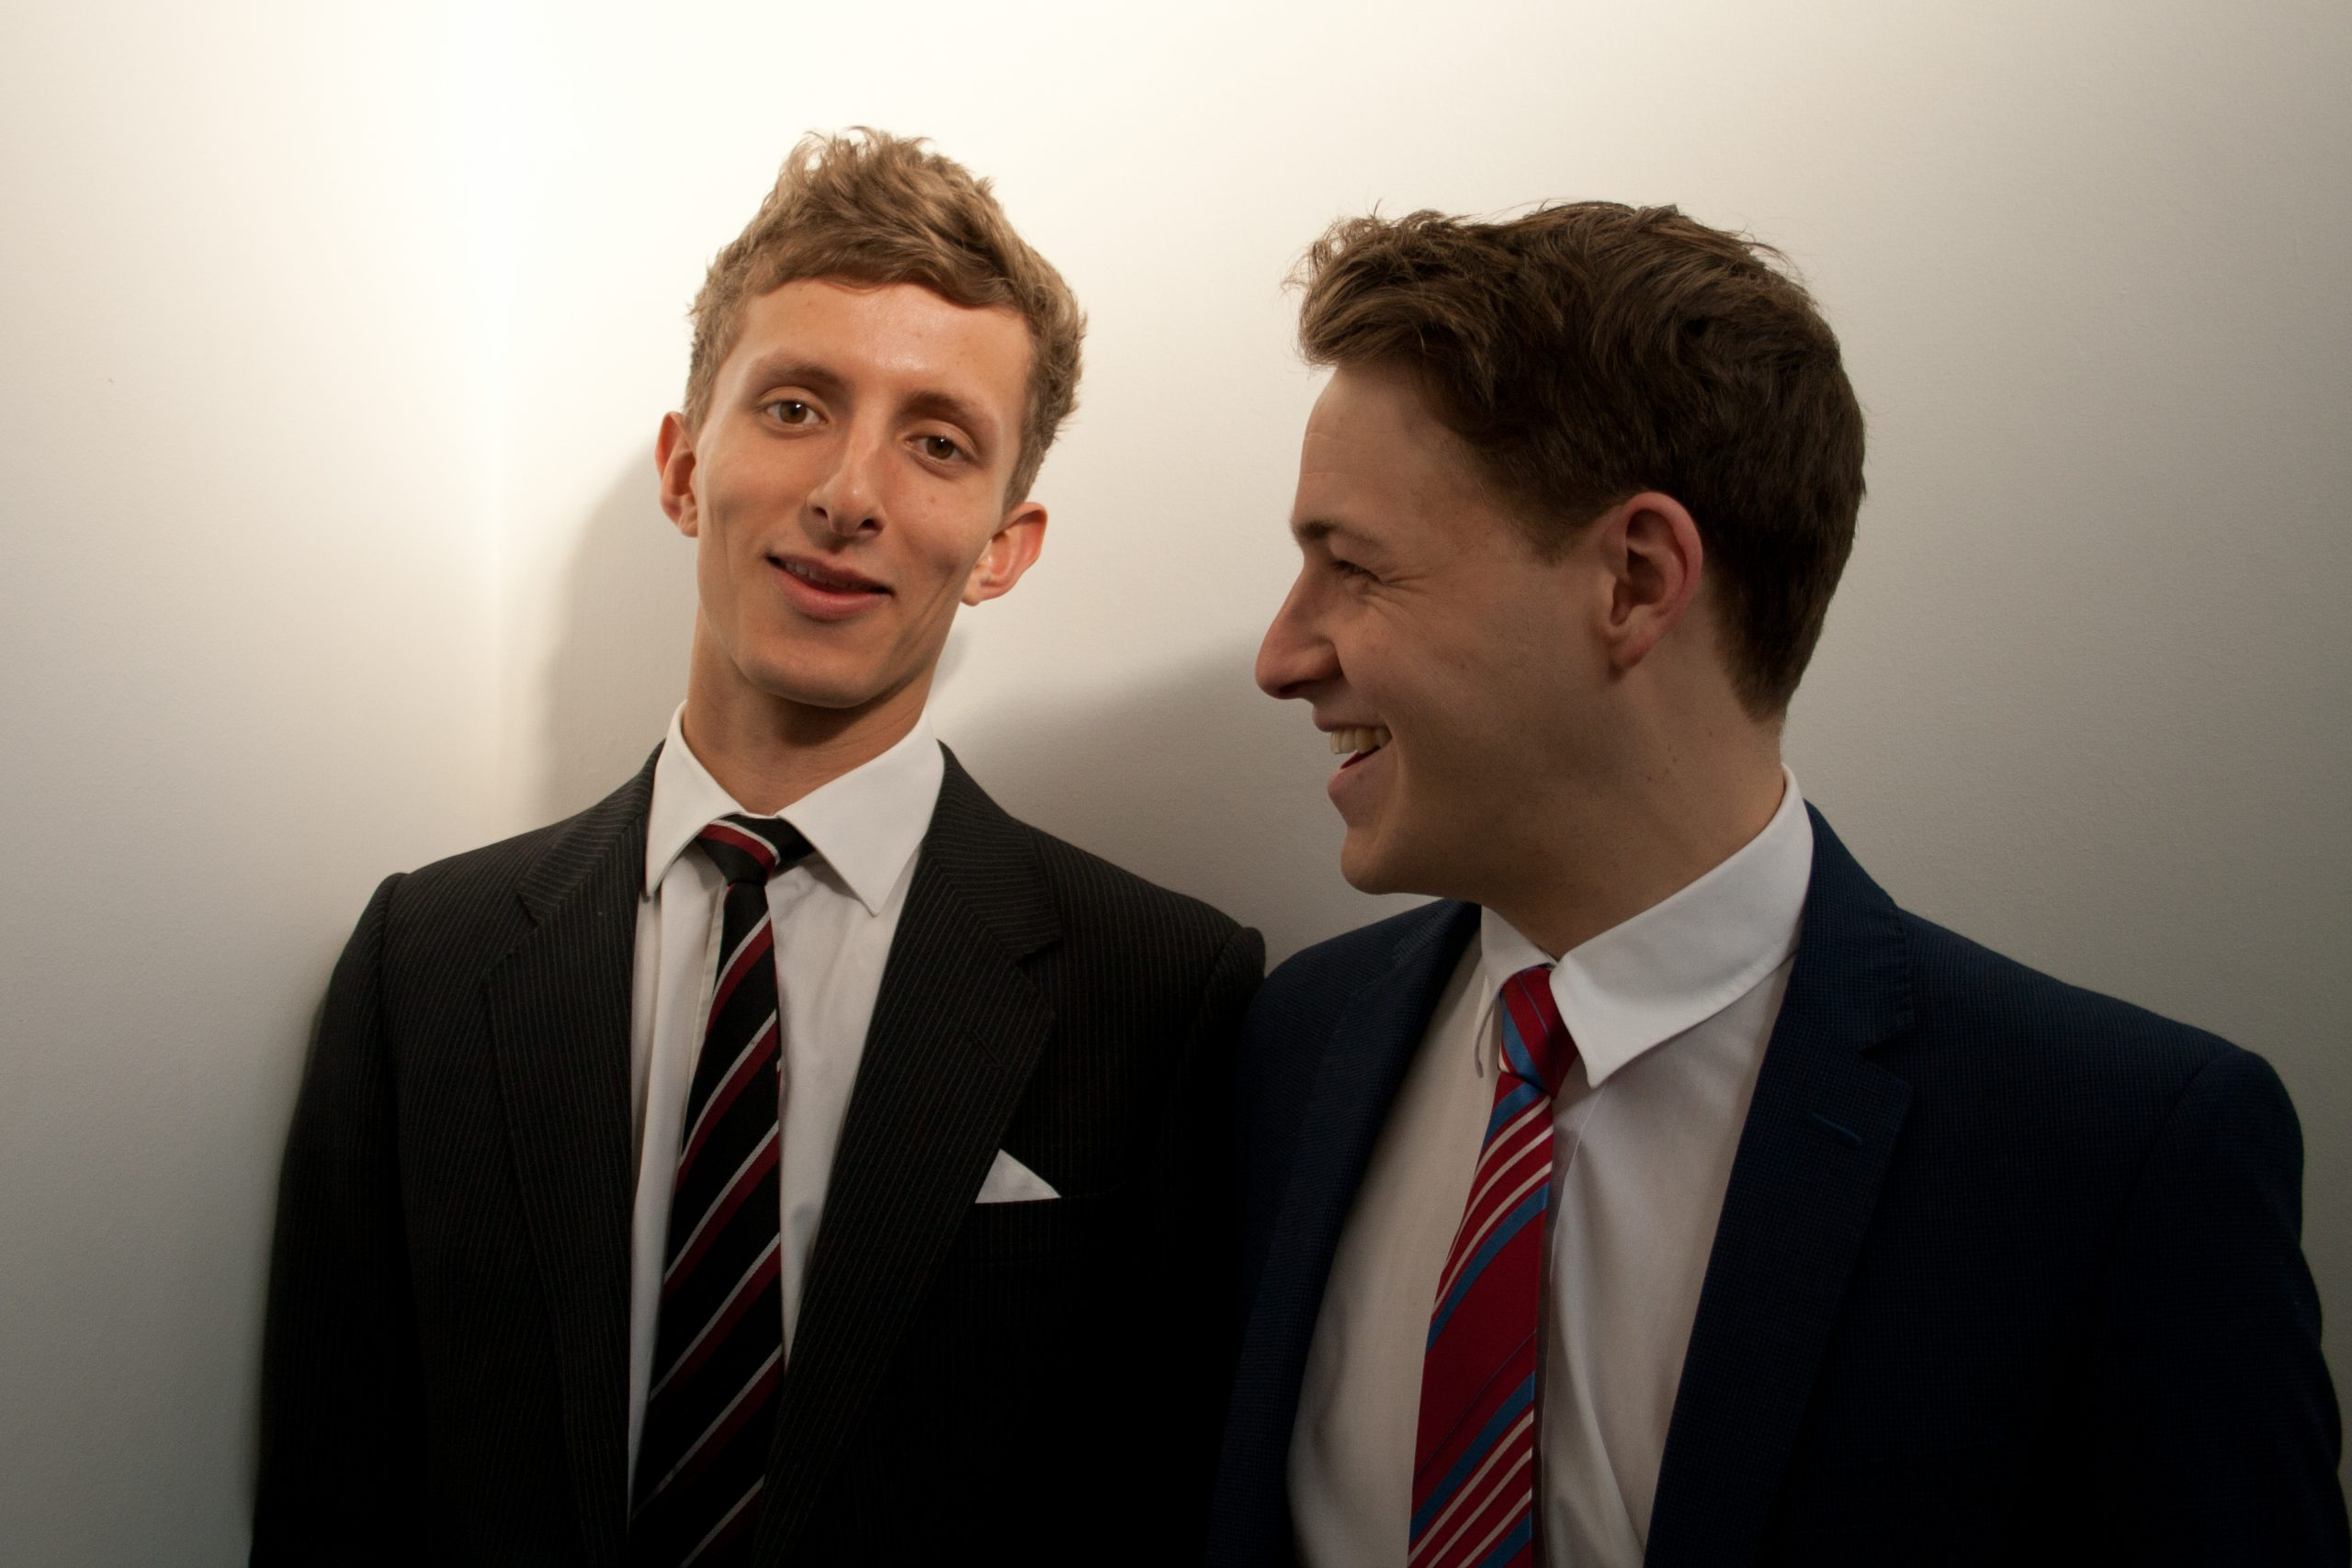 Hire a London Jazz Duo